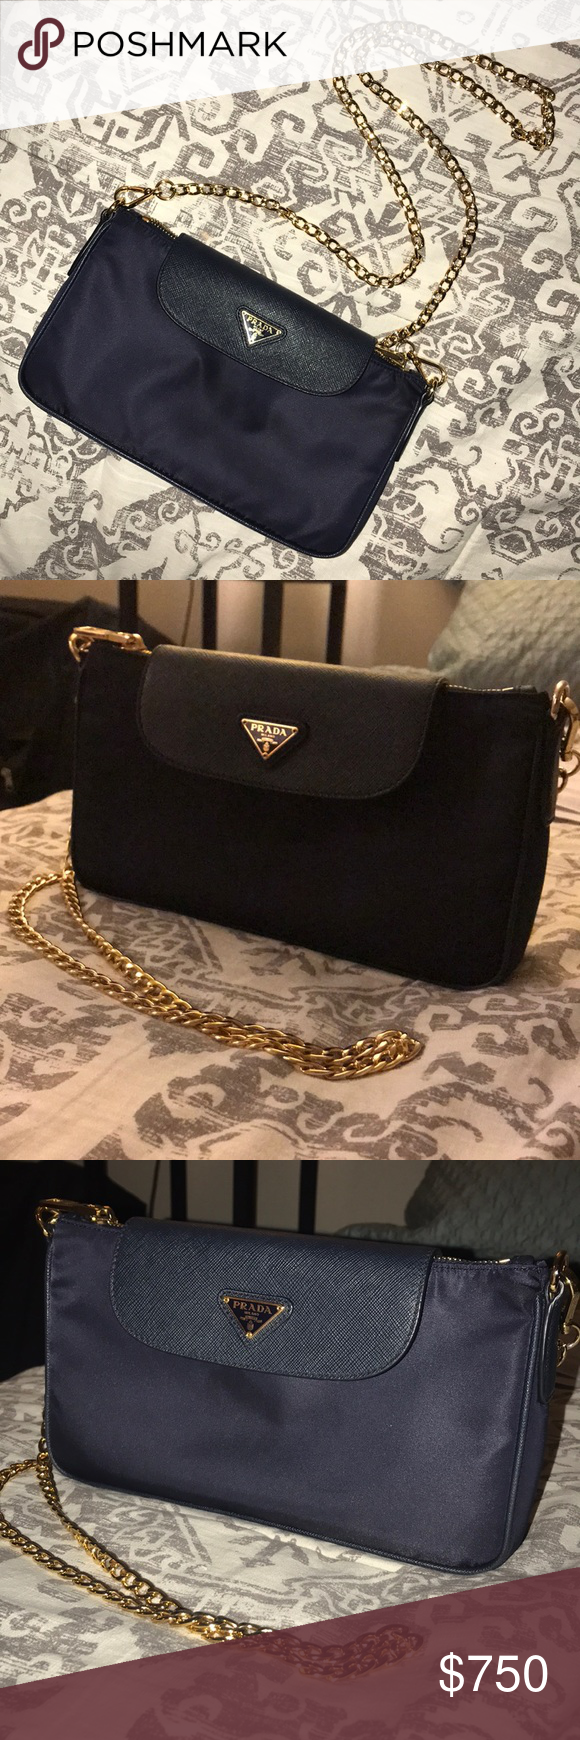 3c0c363aad2394 Authentic Prada Nylon and saffiano leather bag Authentic Prada shoulder bag,  gold attachable chain, zip closure , two inside compartments one with a  zipper. ...